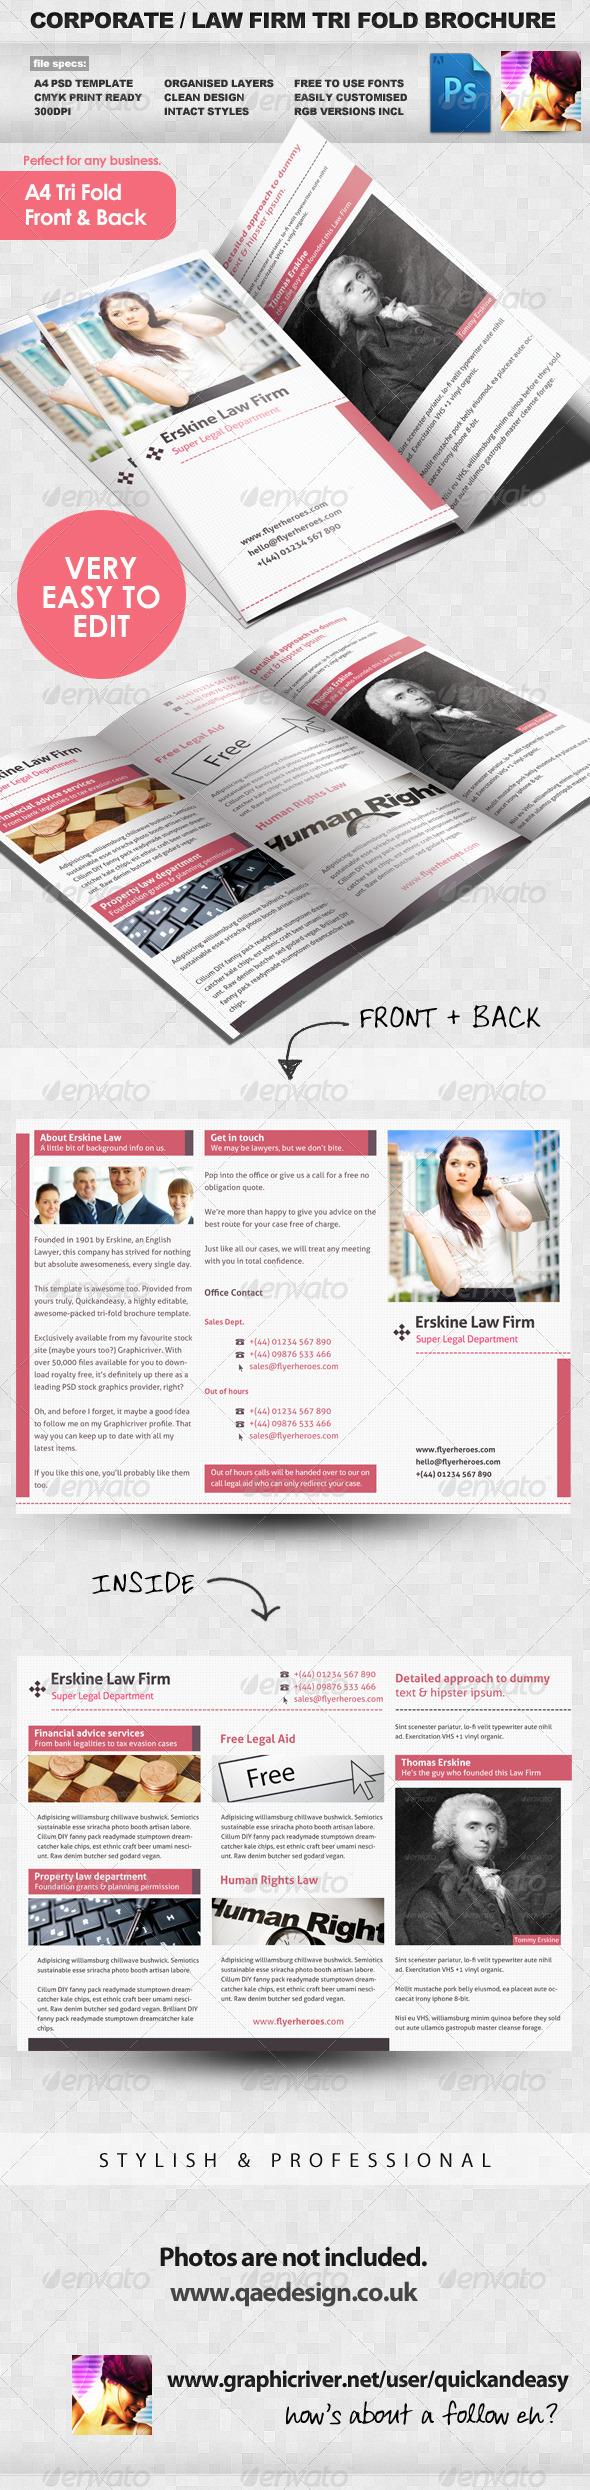 Law firm tri fold leaflet brochure template graphicriver for Legal brochure template